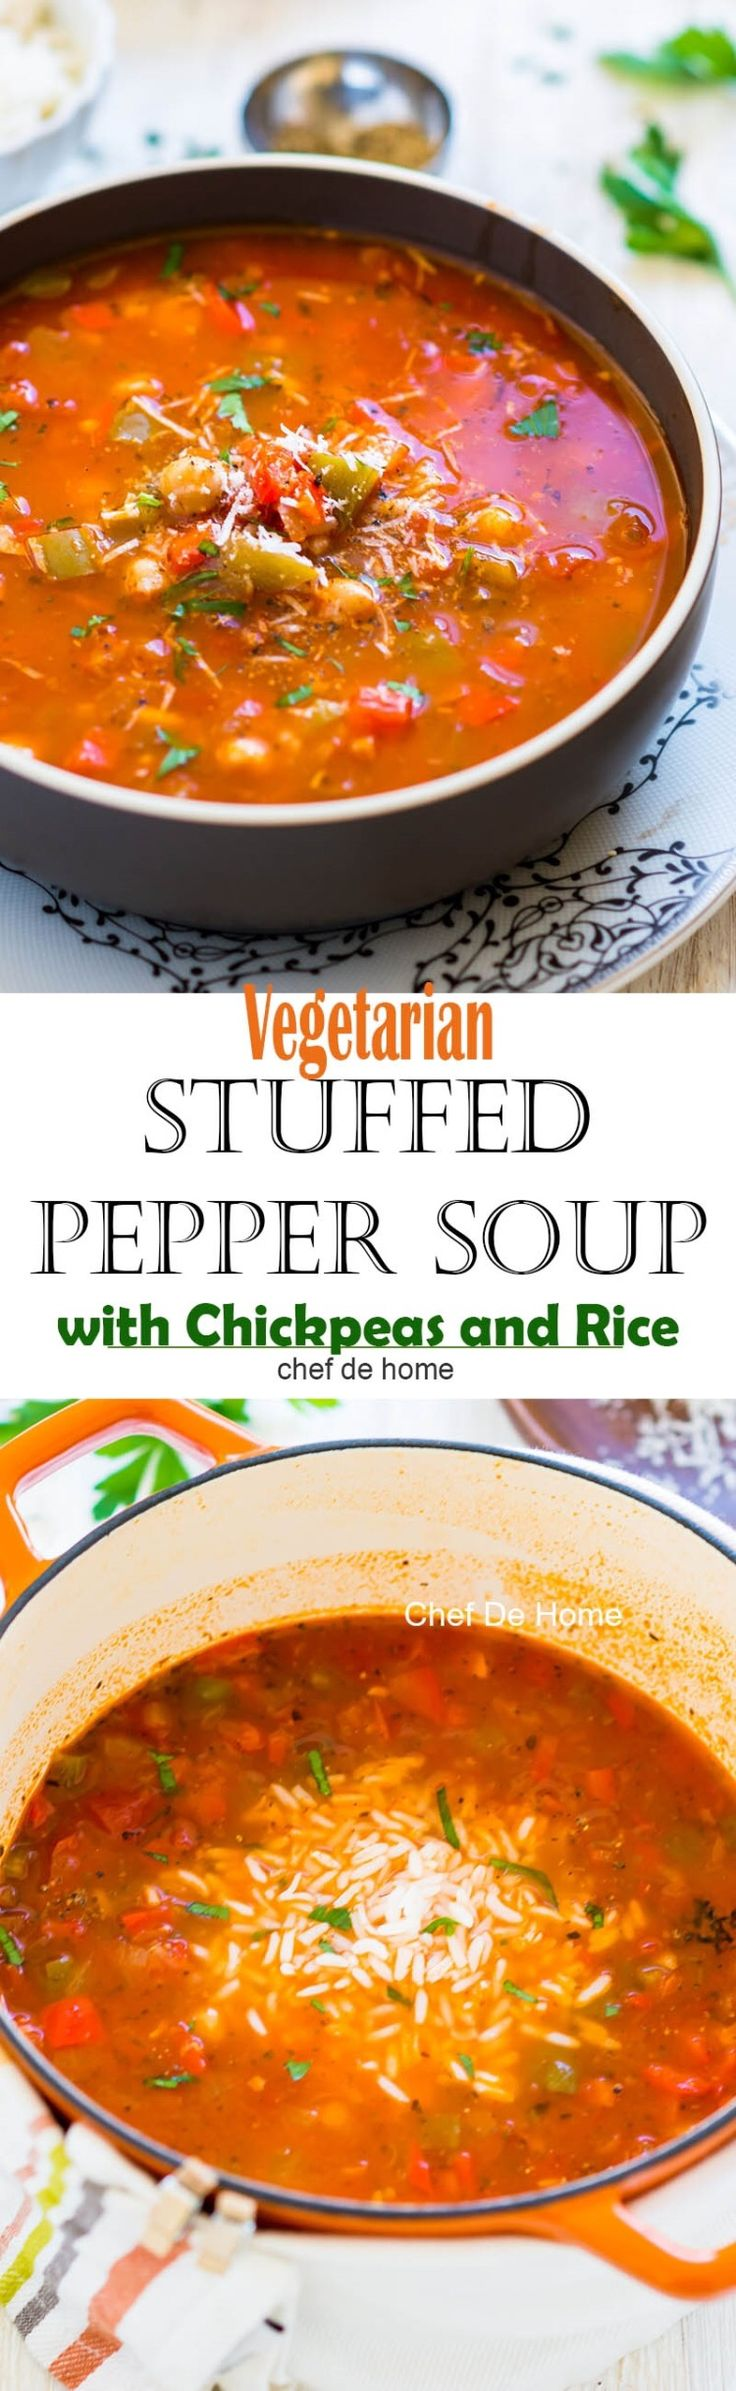 Vegetarian Stuffed Pepper Soup Vegetarian and healthy stuffed pepper soup with chickpeas. Filling and comforting just like stuffed pepper casserole. (Simple Dinner Recipes Soup)